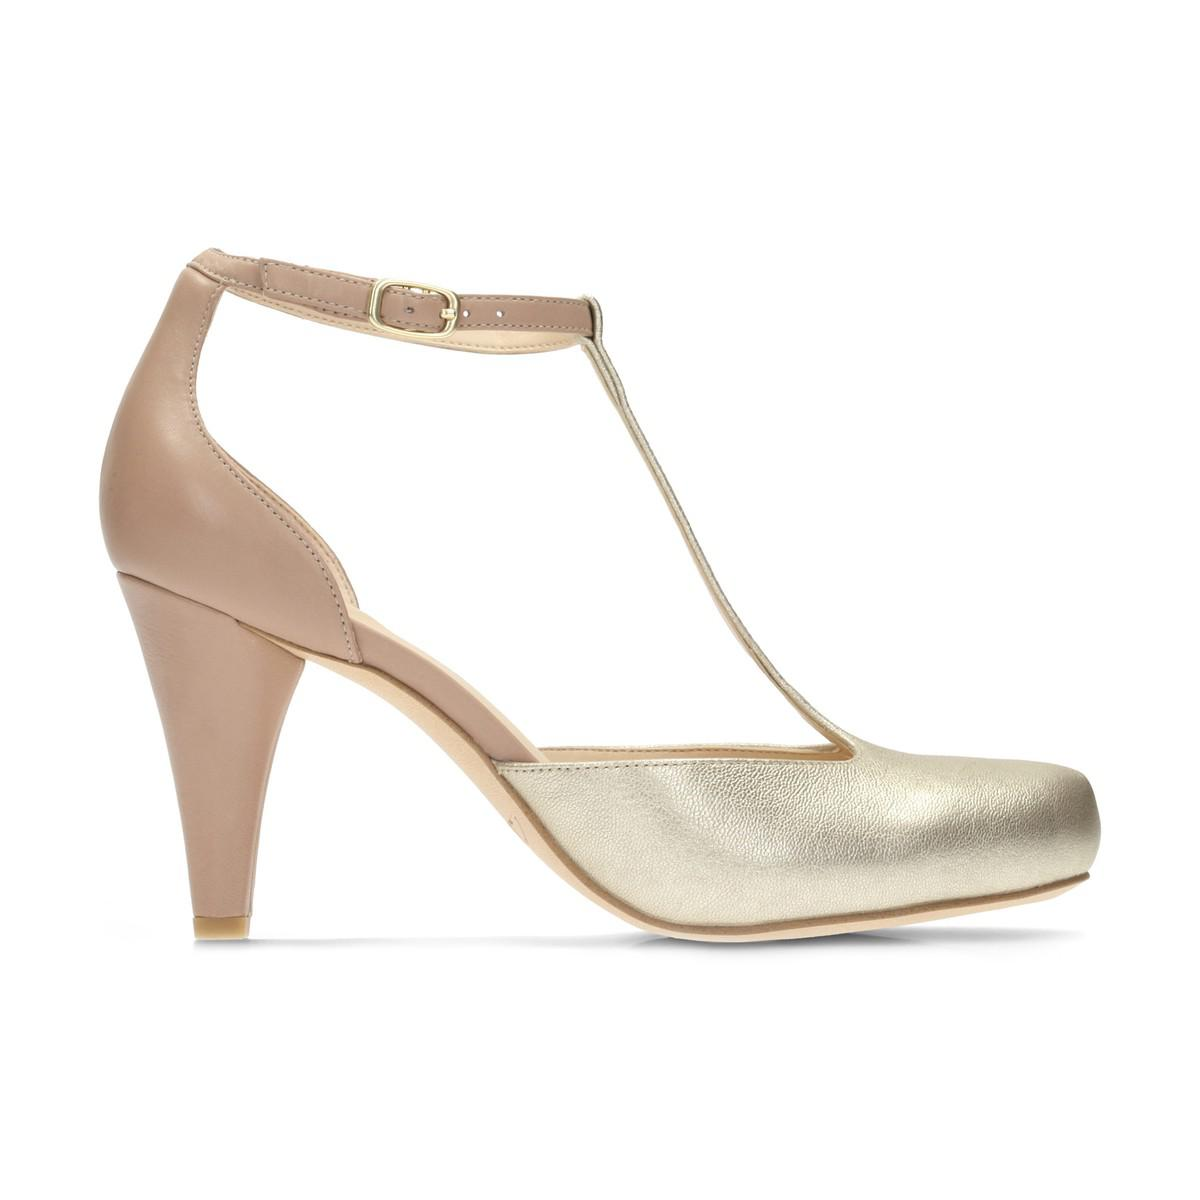 CLARKS Dalia Tulip Leather T-Bar Shoes under $60 for sale with paypal sale online factory outlet cheap price low price fee shipping online reliable Ivc6b8E